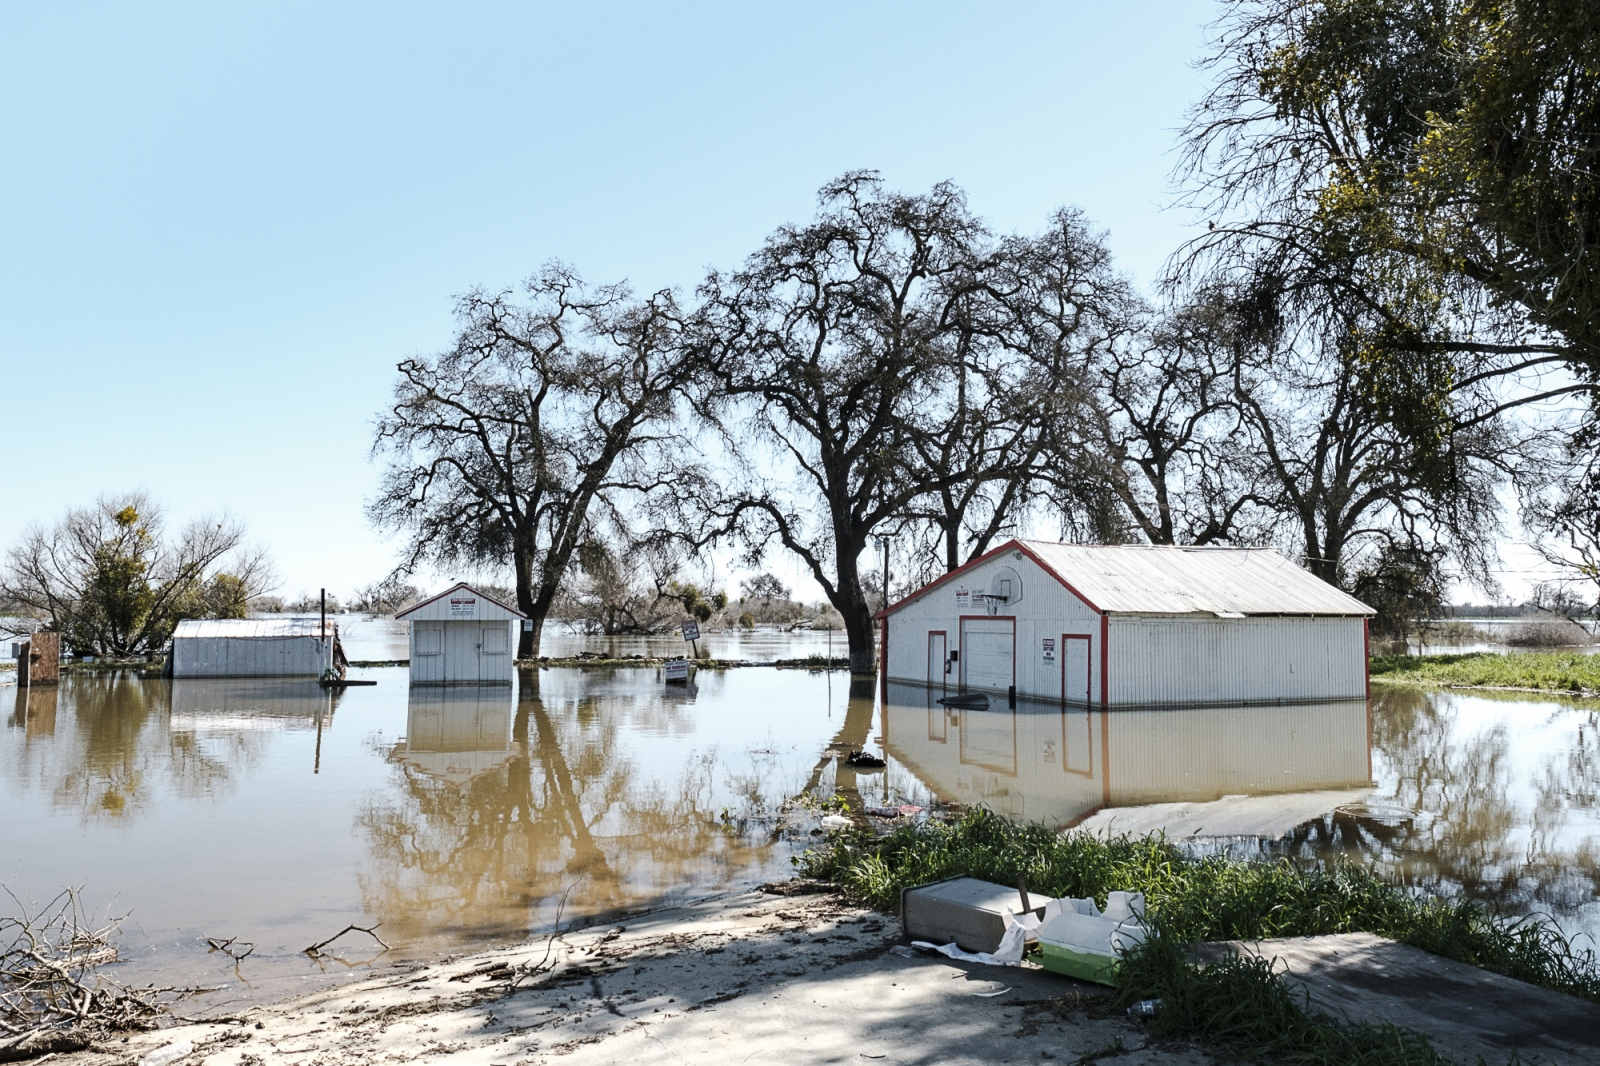 Flooded trailer park near the San Joaquin River, Winter 2017